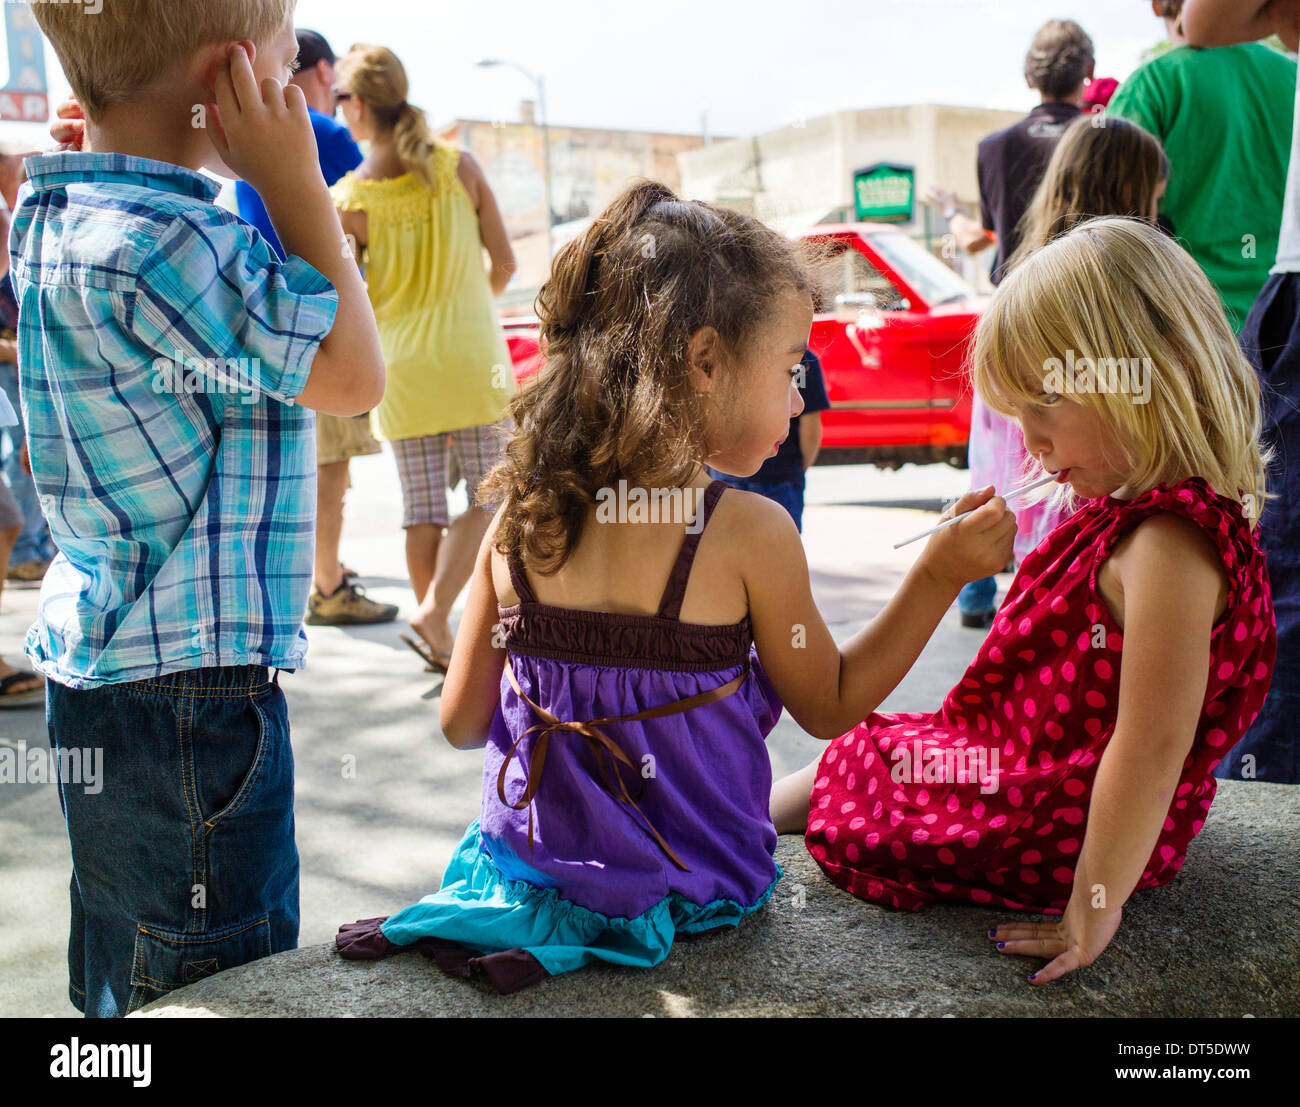 Children at the Angel of Shavano Car Show, fund raiser for Chaffee County Search & Rescue South, Salida, Colorado, USA - Stock Image